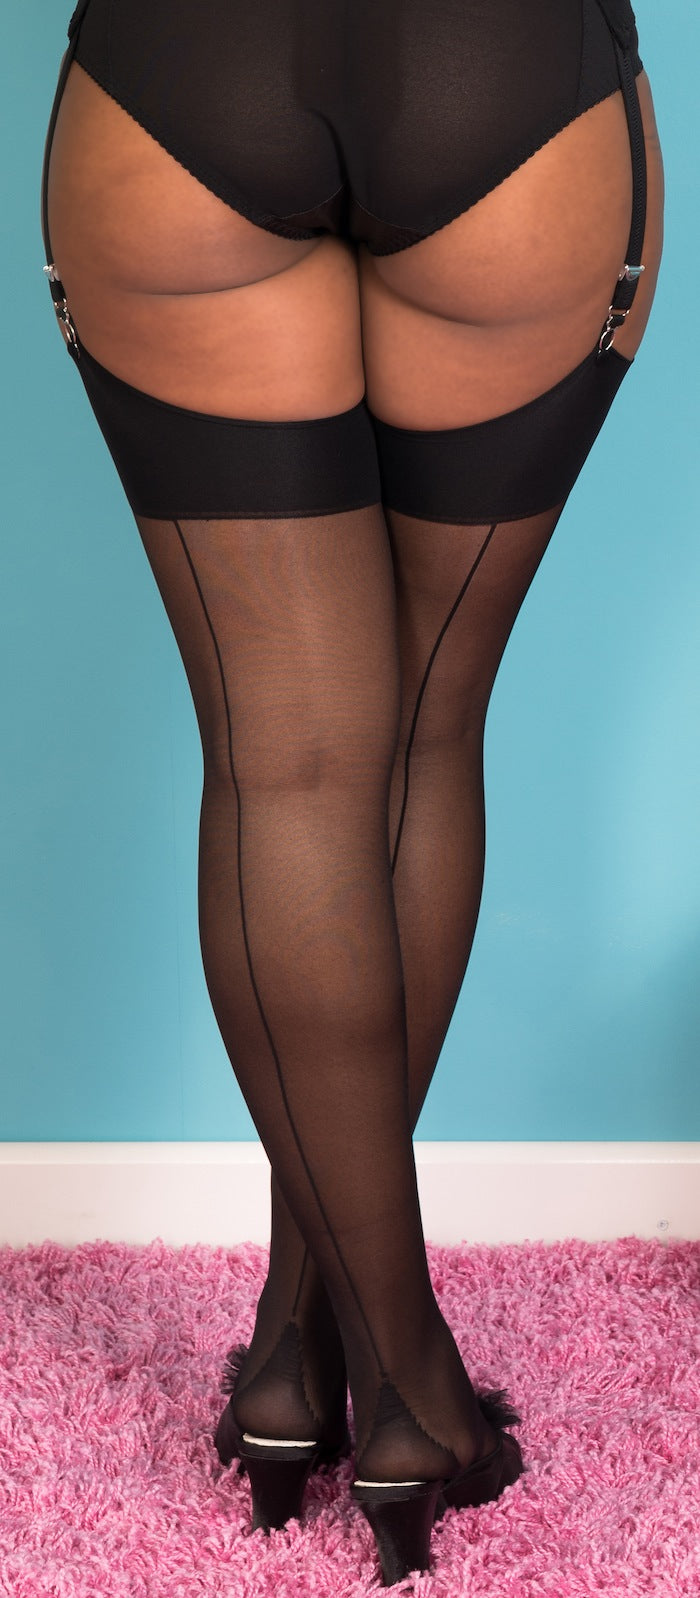 Glamour Stockings in Black with Black Seams